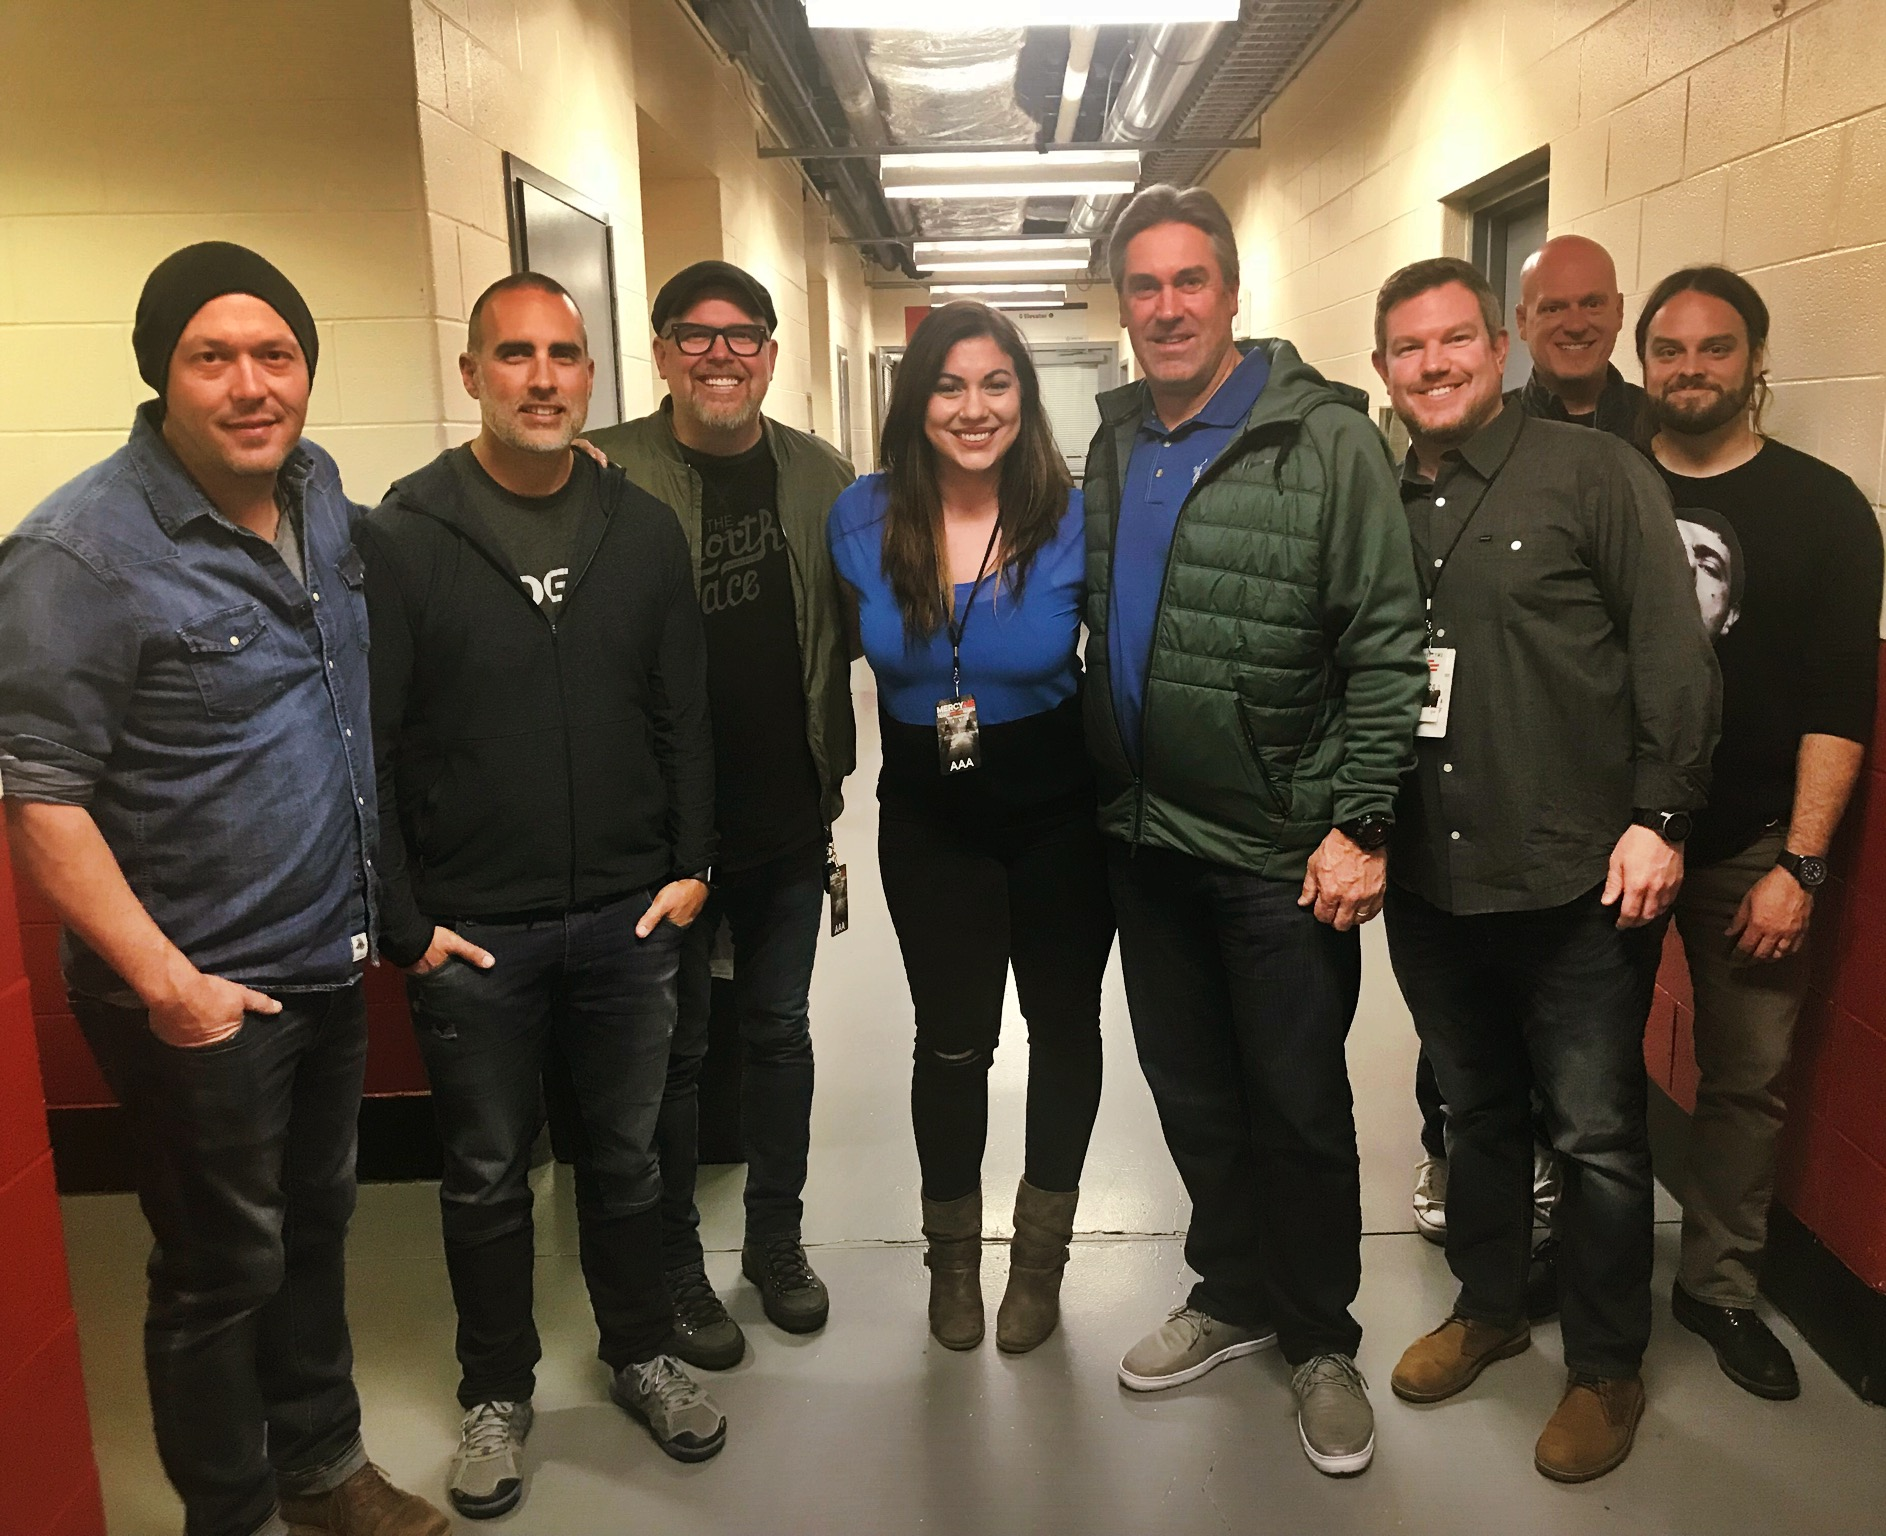 From left to right: Mike Scheuchzer (MercyMe), Robby Shaffer (MercyMe), Bart Millard (MercyMe), Honnah Bakhtiary (191 Touring) , Doug Pederson (Philadelphia Eagles Coach), Joe Sheridan (Liacouras Center GM), Barry Graul (MercyMe) & Nathan Cochran (MercyMe)